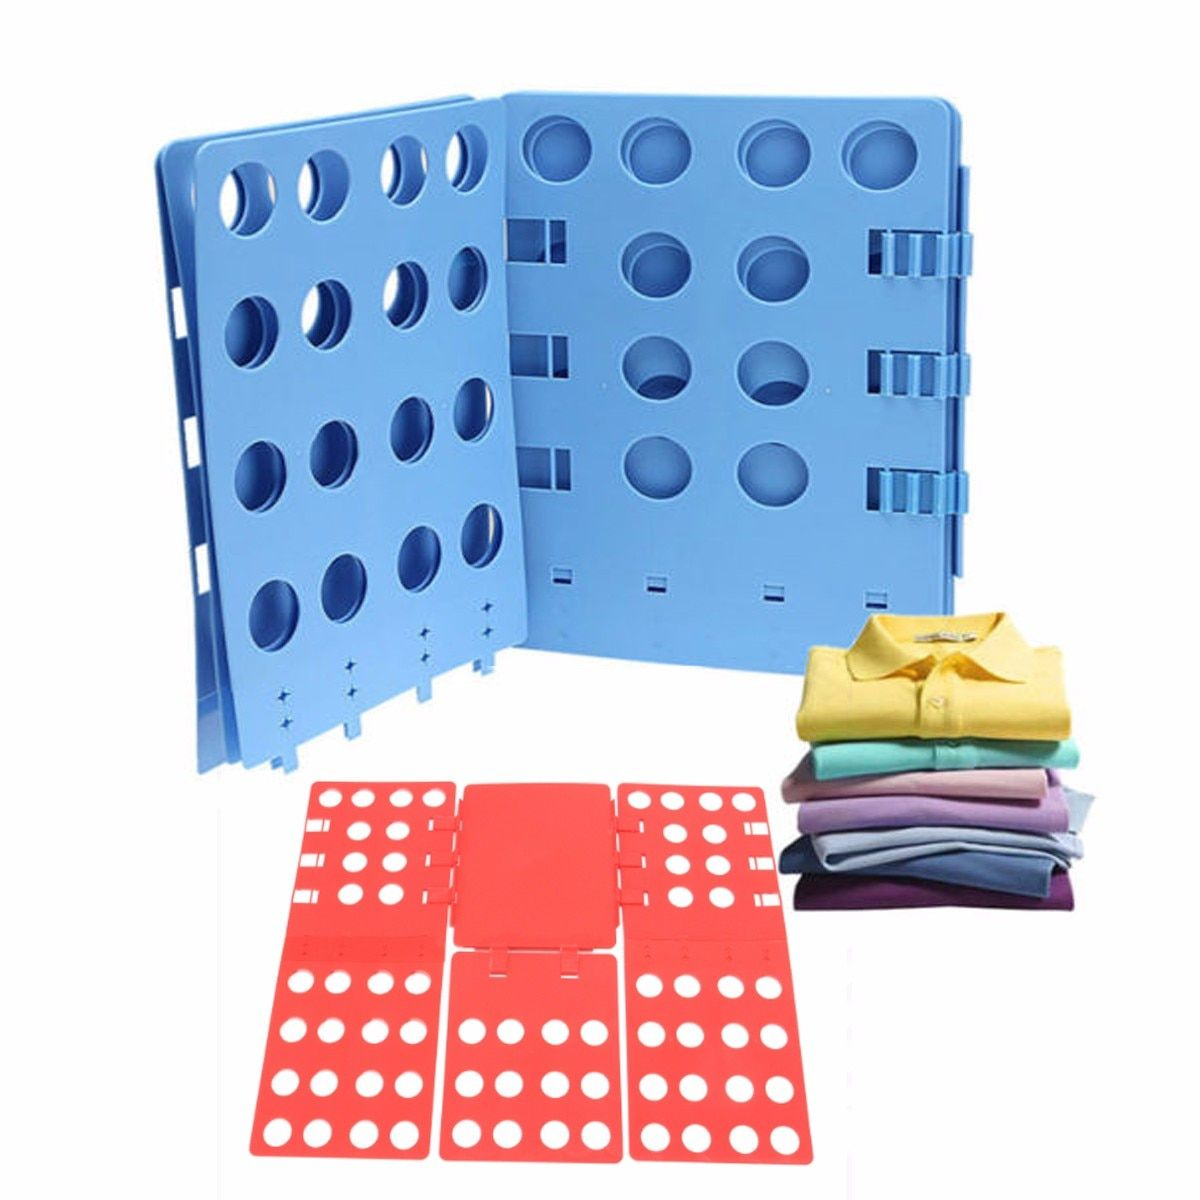 Adult Size Clothes Folding Board Save Time Multifuncitonal Magic Fast <font><b>Speed</b></font> T-Shirt Clothes Easy Fold Organize 69x56cm